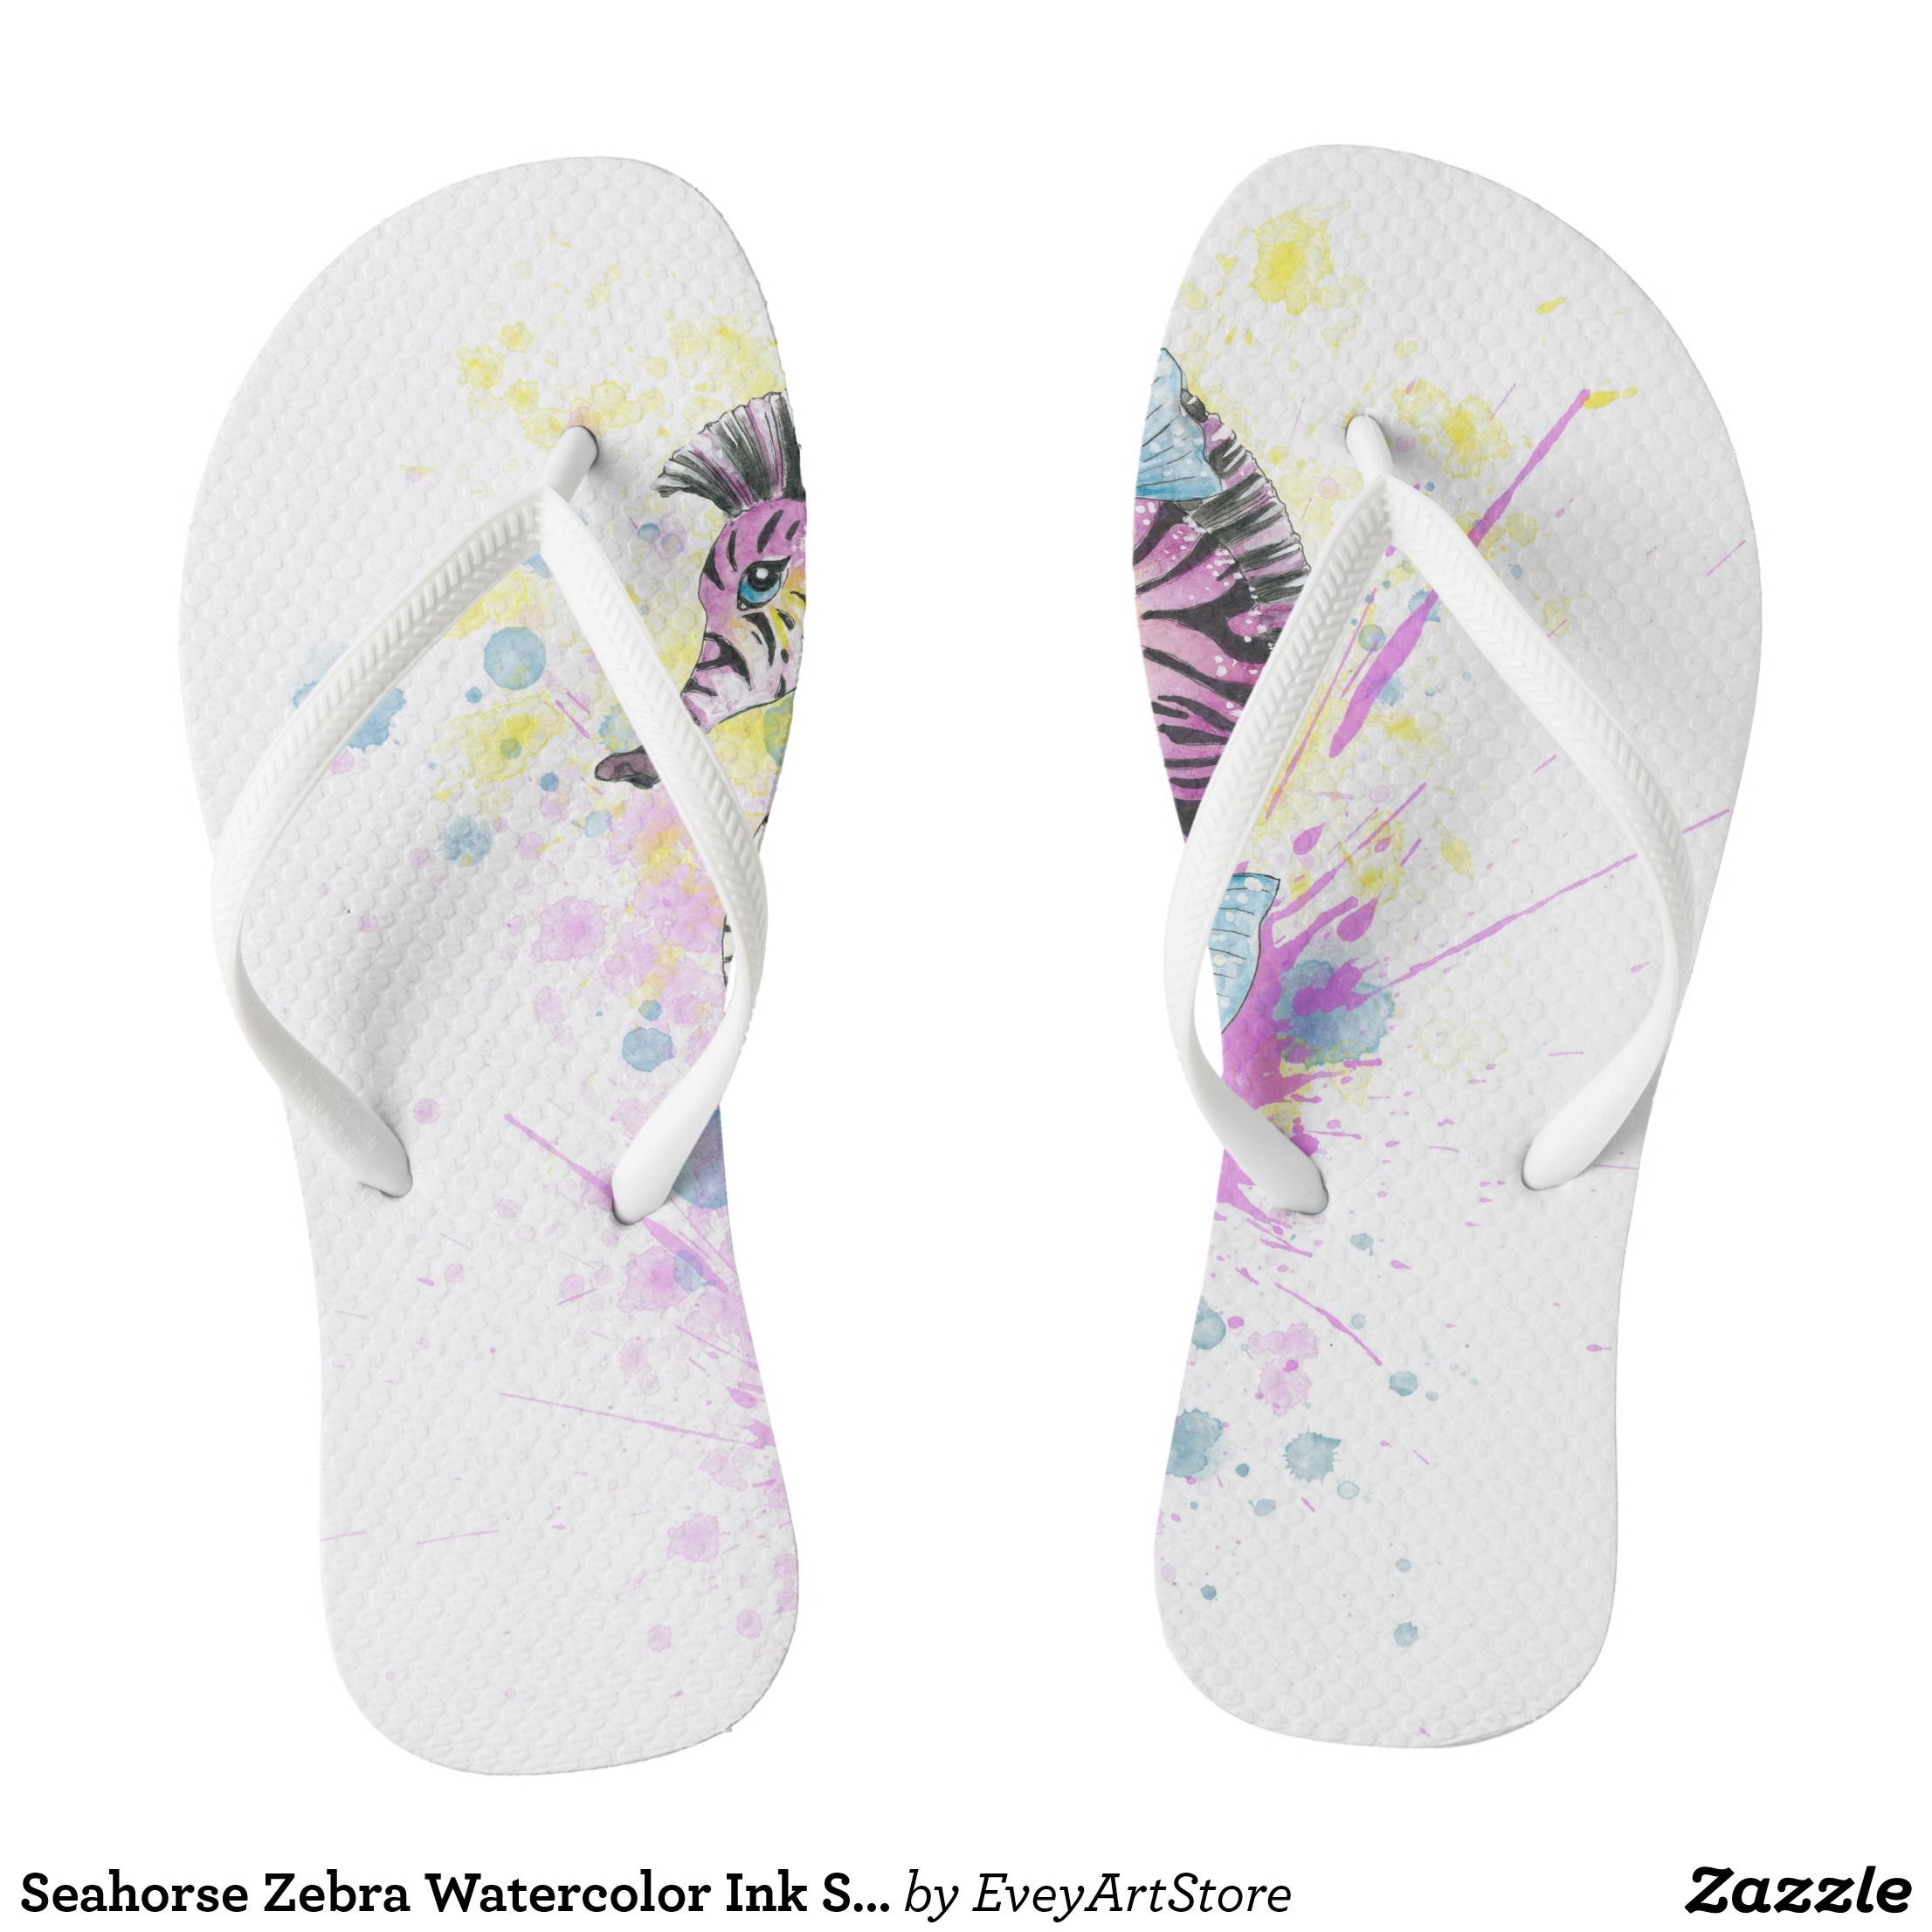 20cc34eb7a9a31 Seahorse Zebra Watercolor Ink Splash Flip Flops - Durable Thong Style  Hawaiian Beach Sandals By Talented